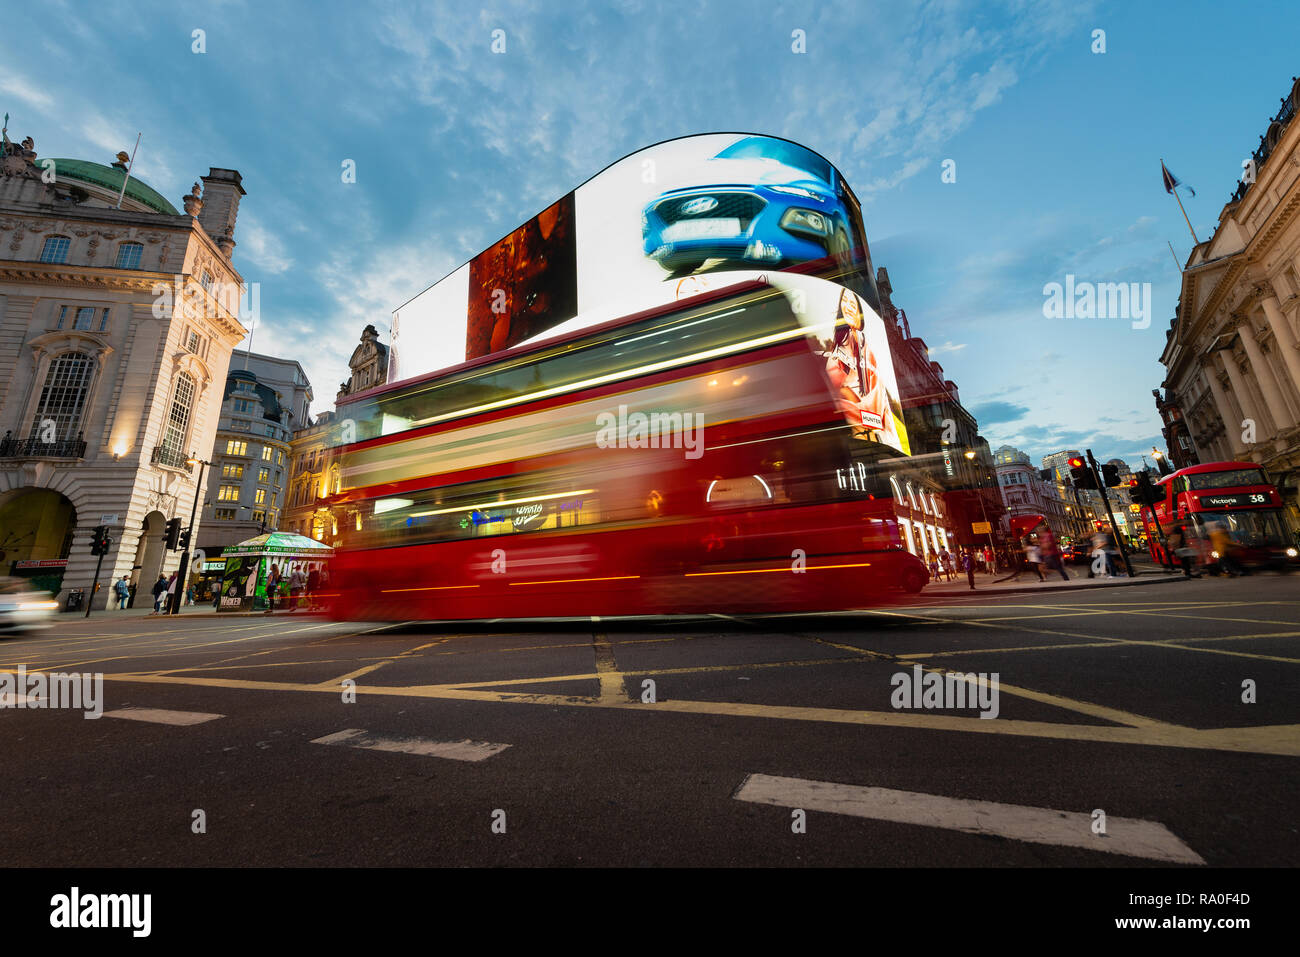 London bus in Picadilly Circus at night - Stock Image